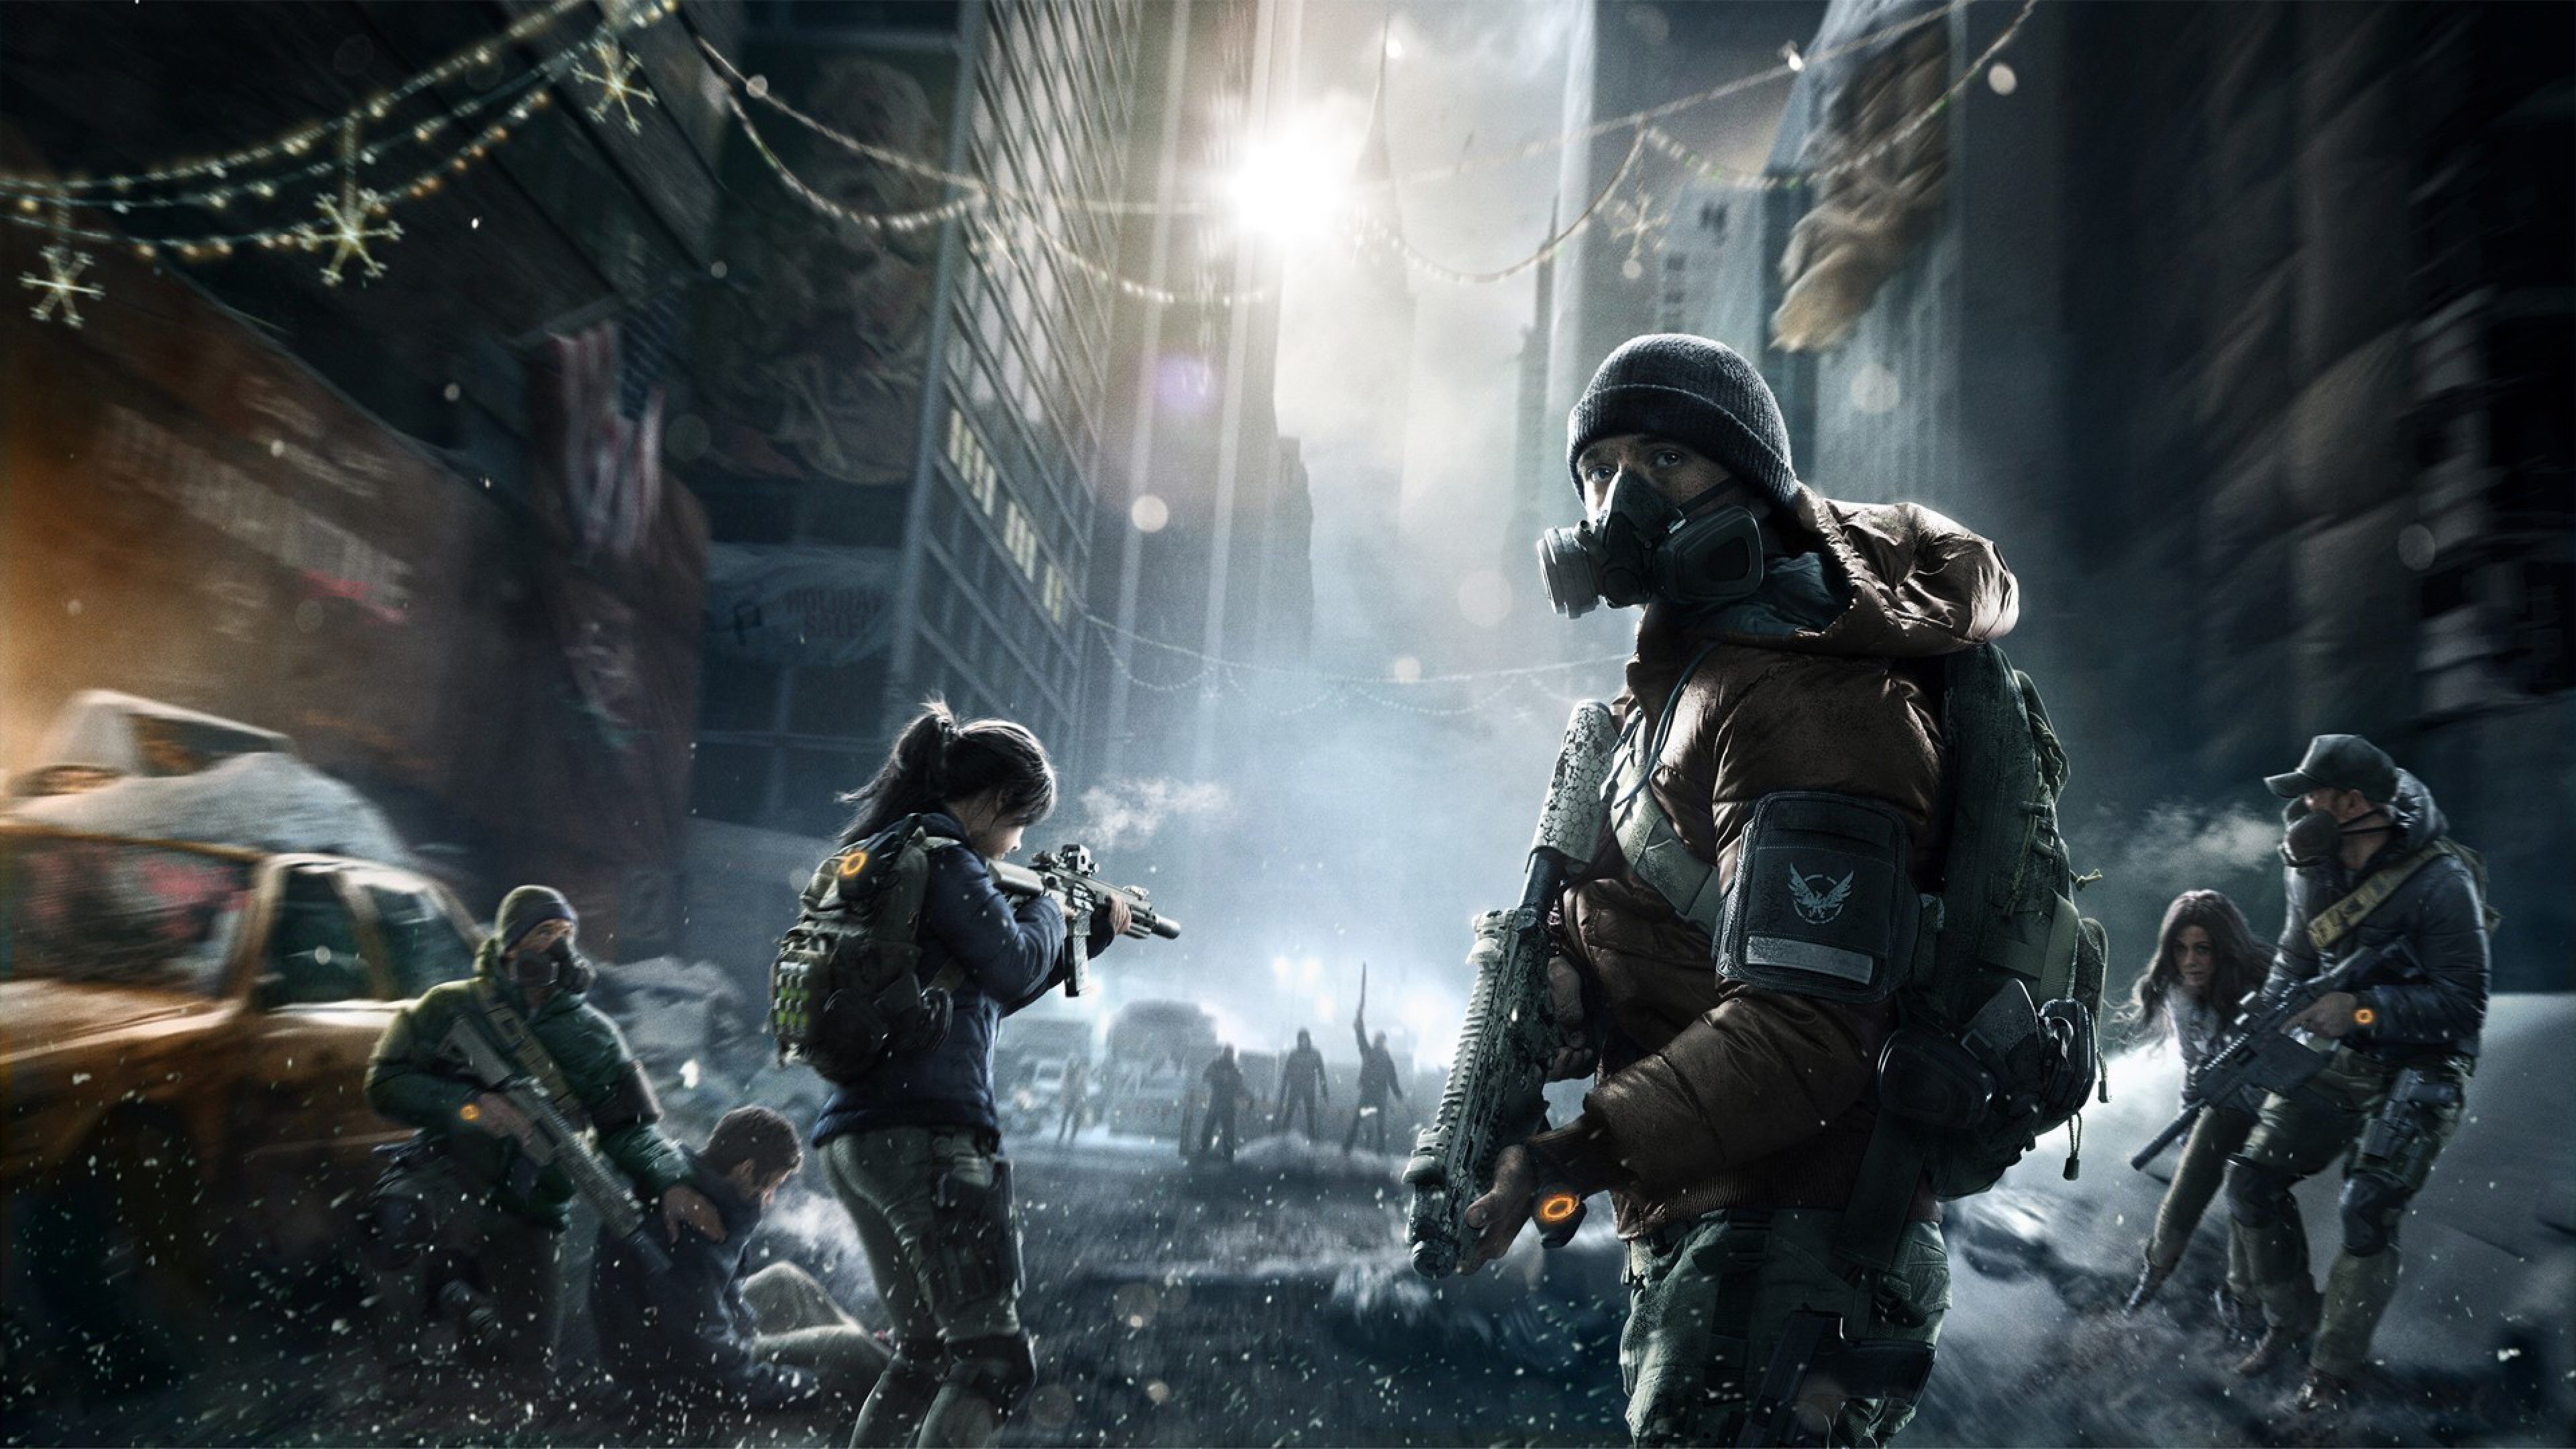 Ultra Hd Gaming Wallpapers Top Free Ultra Hd Gaming Backgrounds Wallpaperaccess